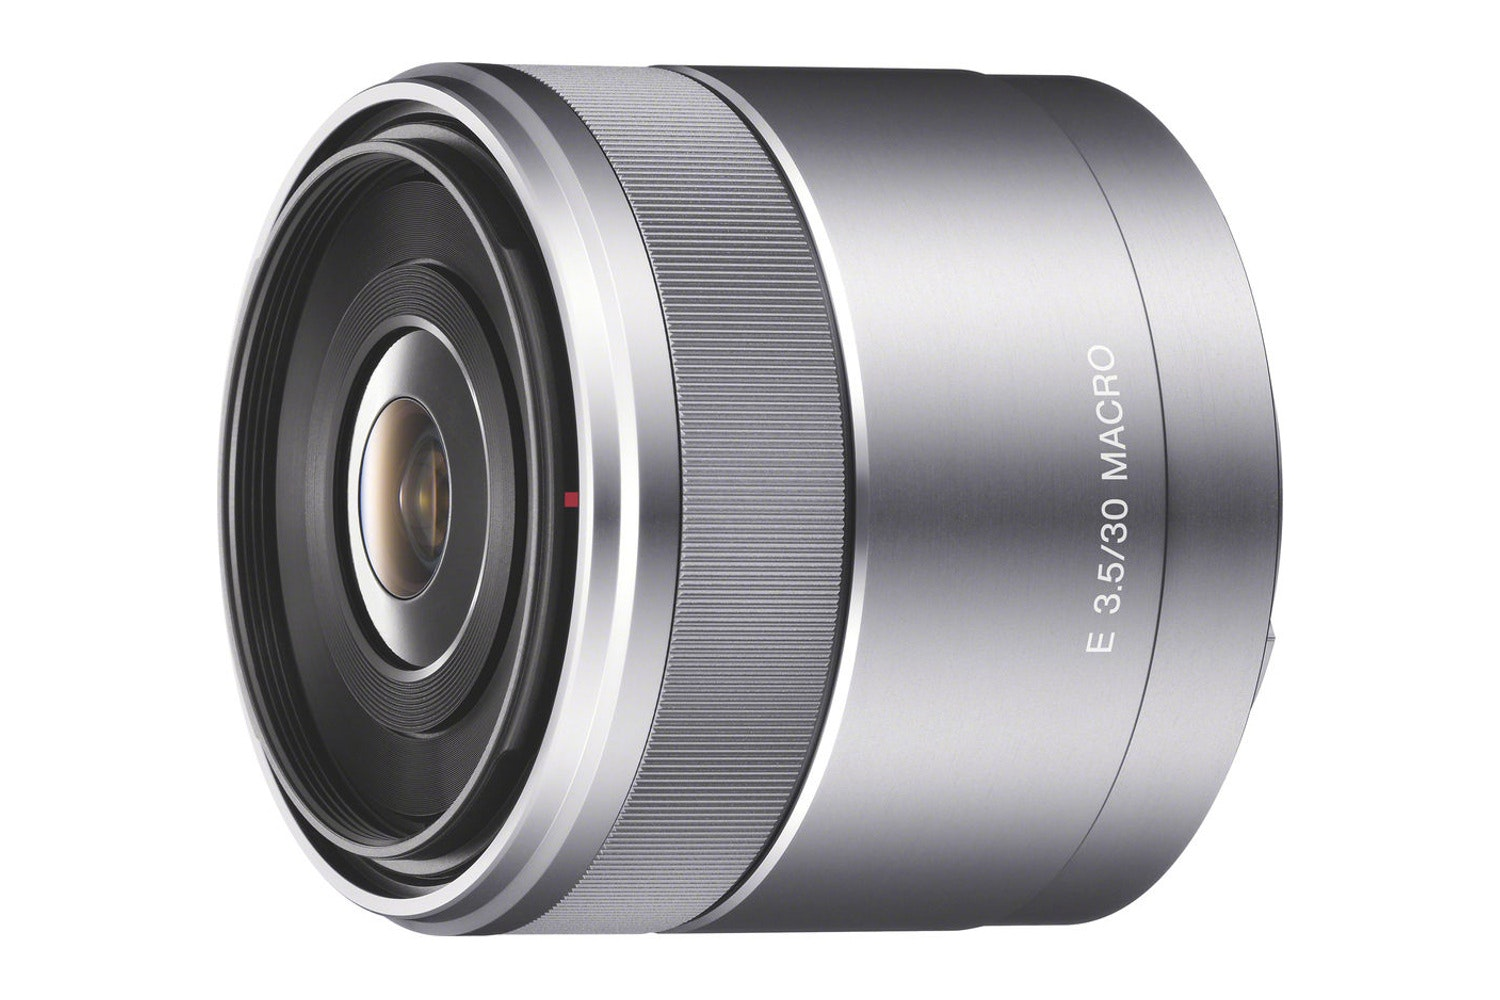 Sony 30mm f3.5 E-Mount Macro Lens